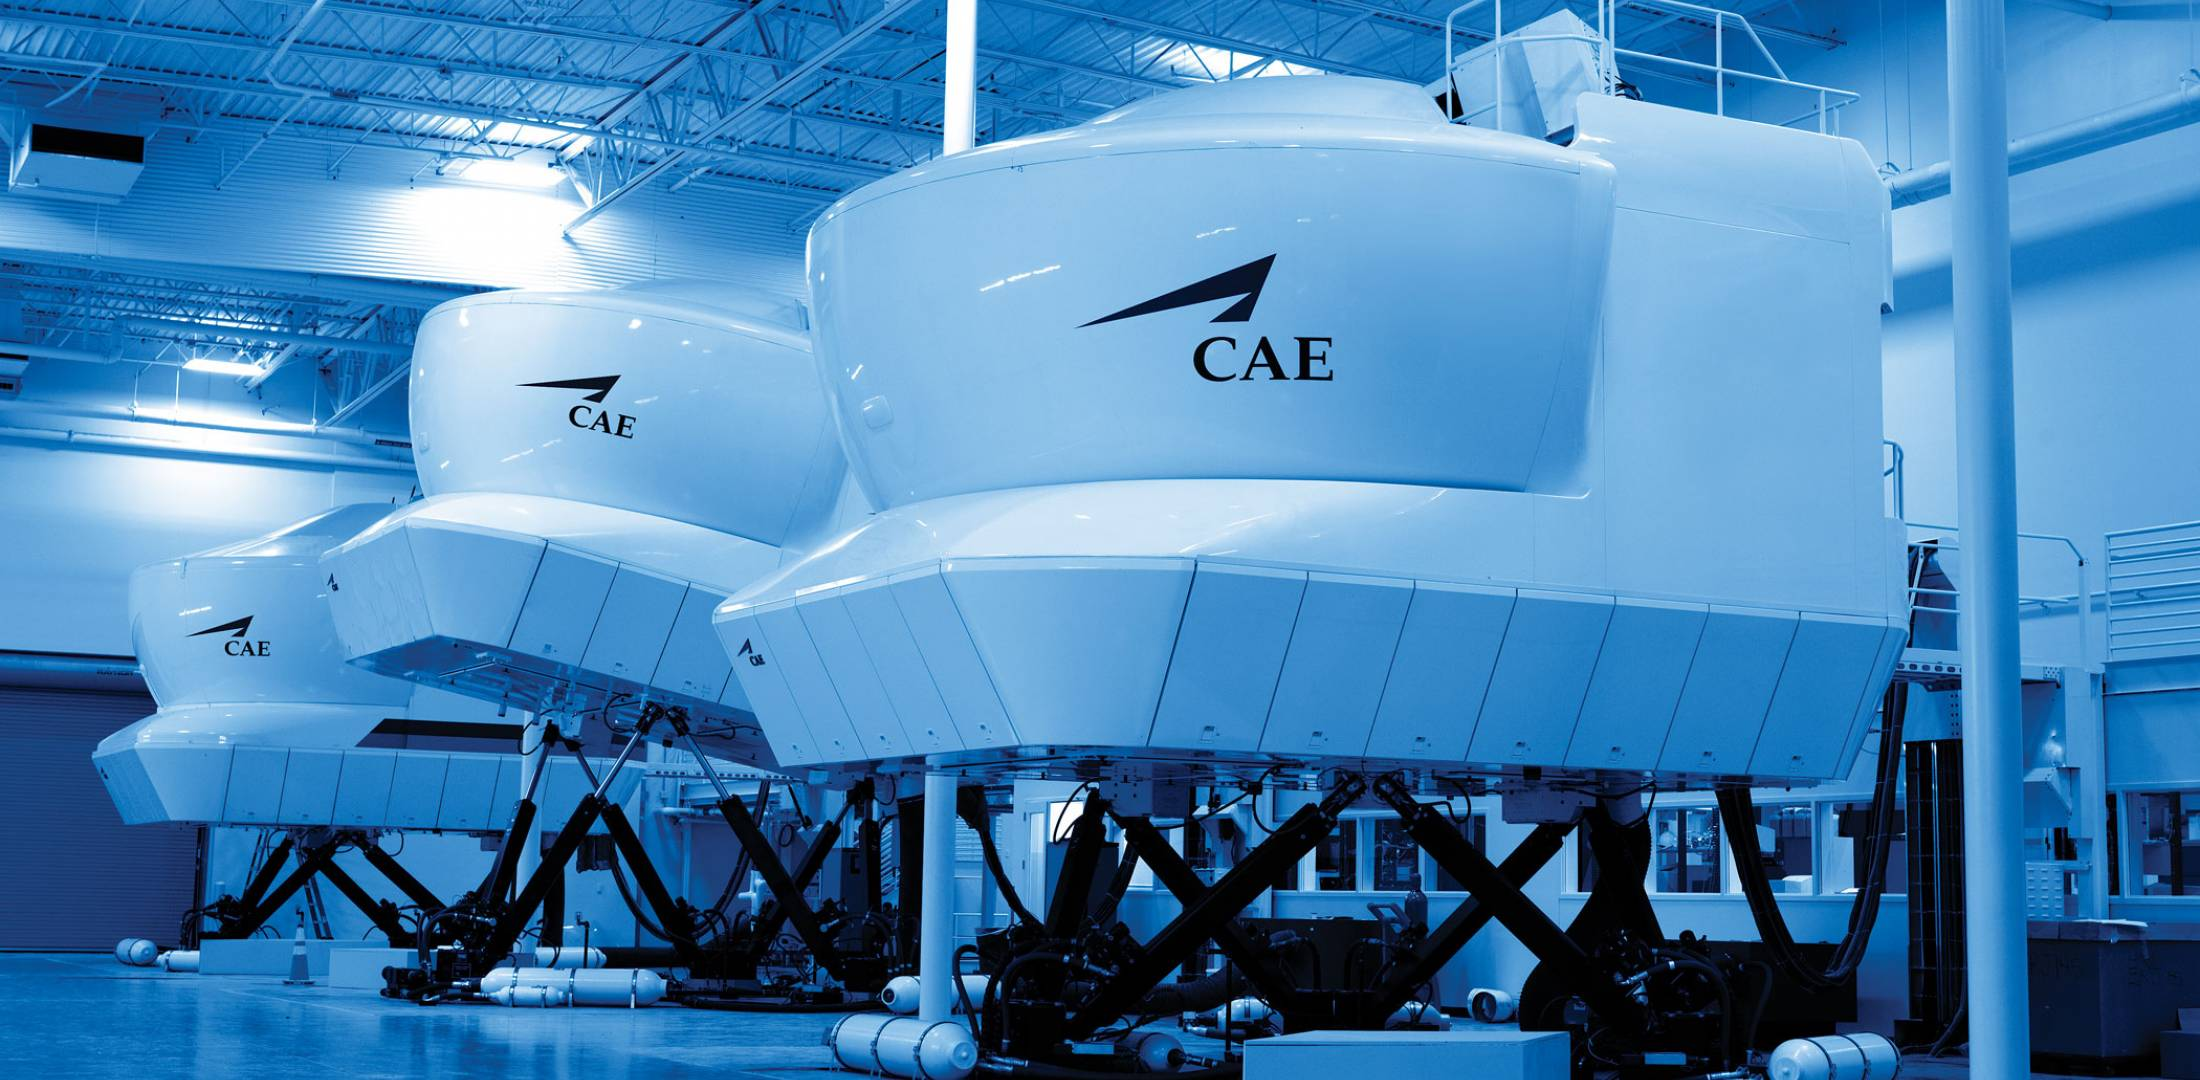 CAE Looks To Cement Image As Trainer | Business Aviation